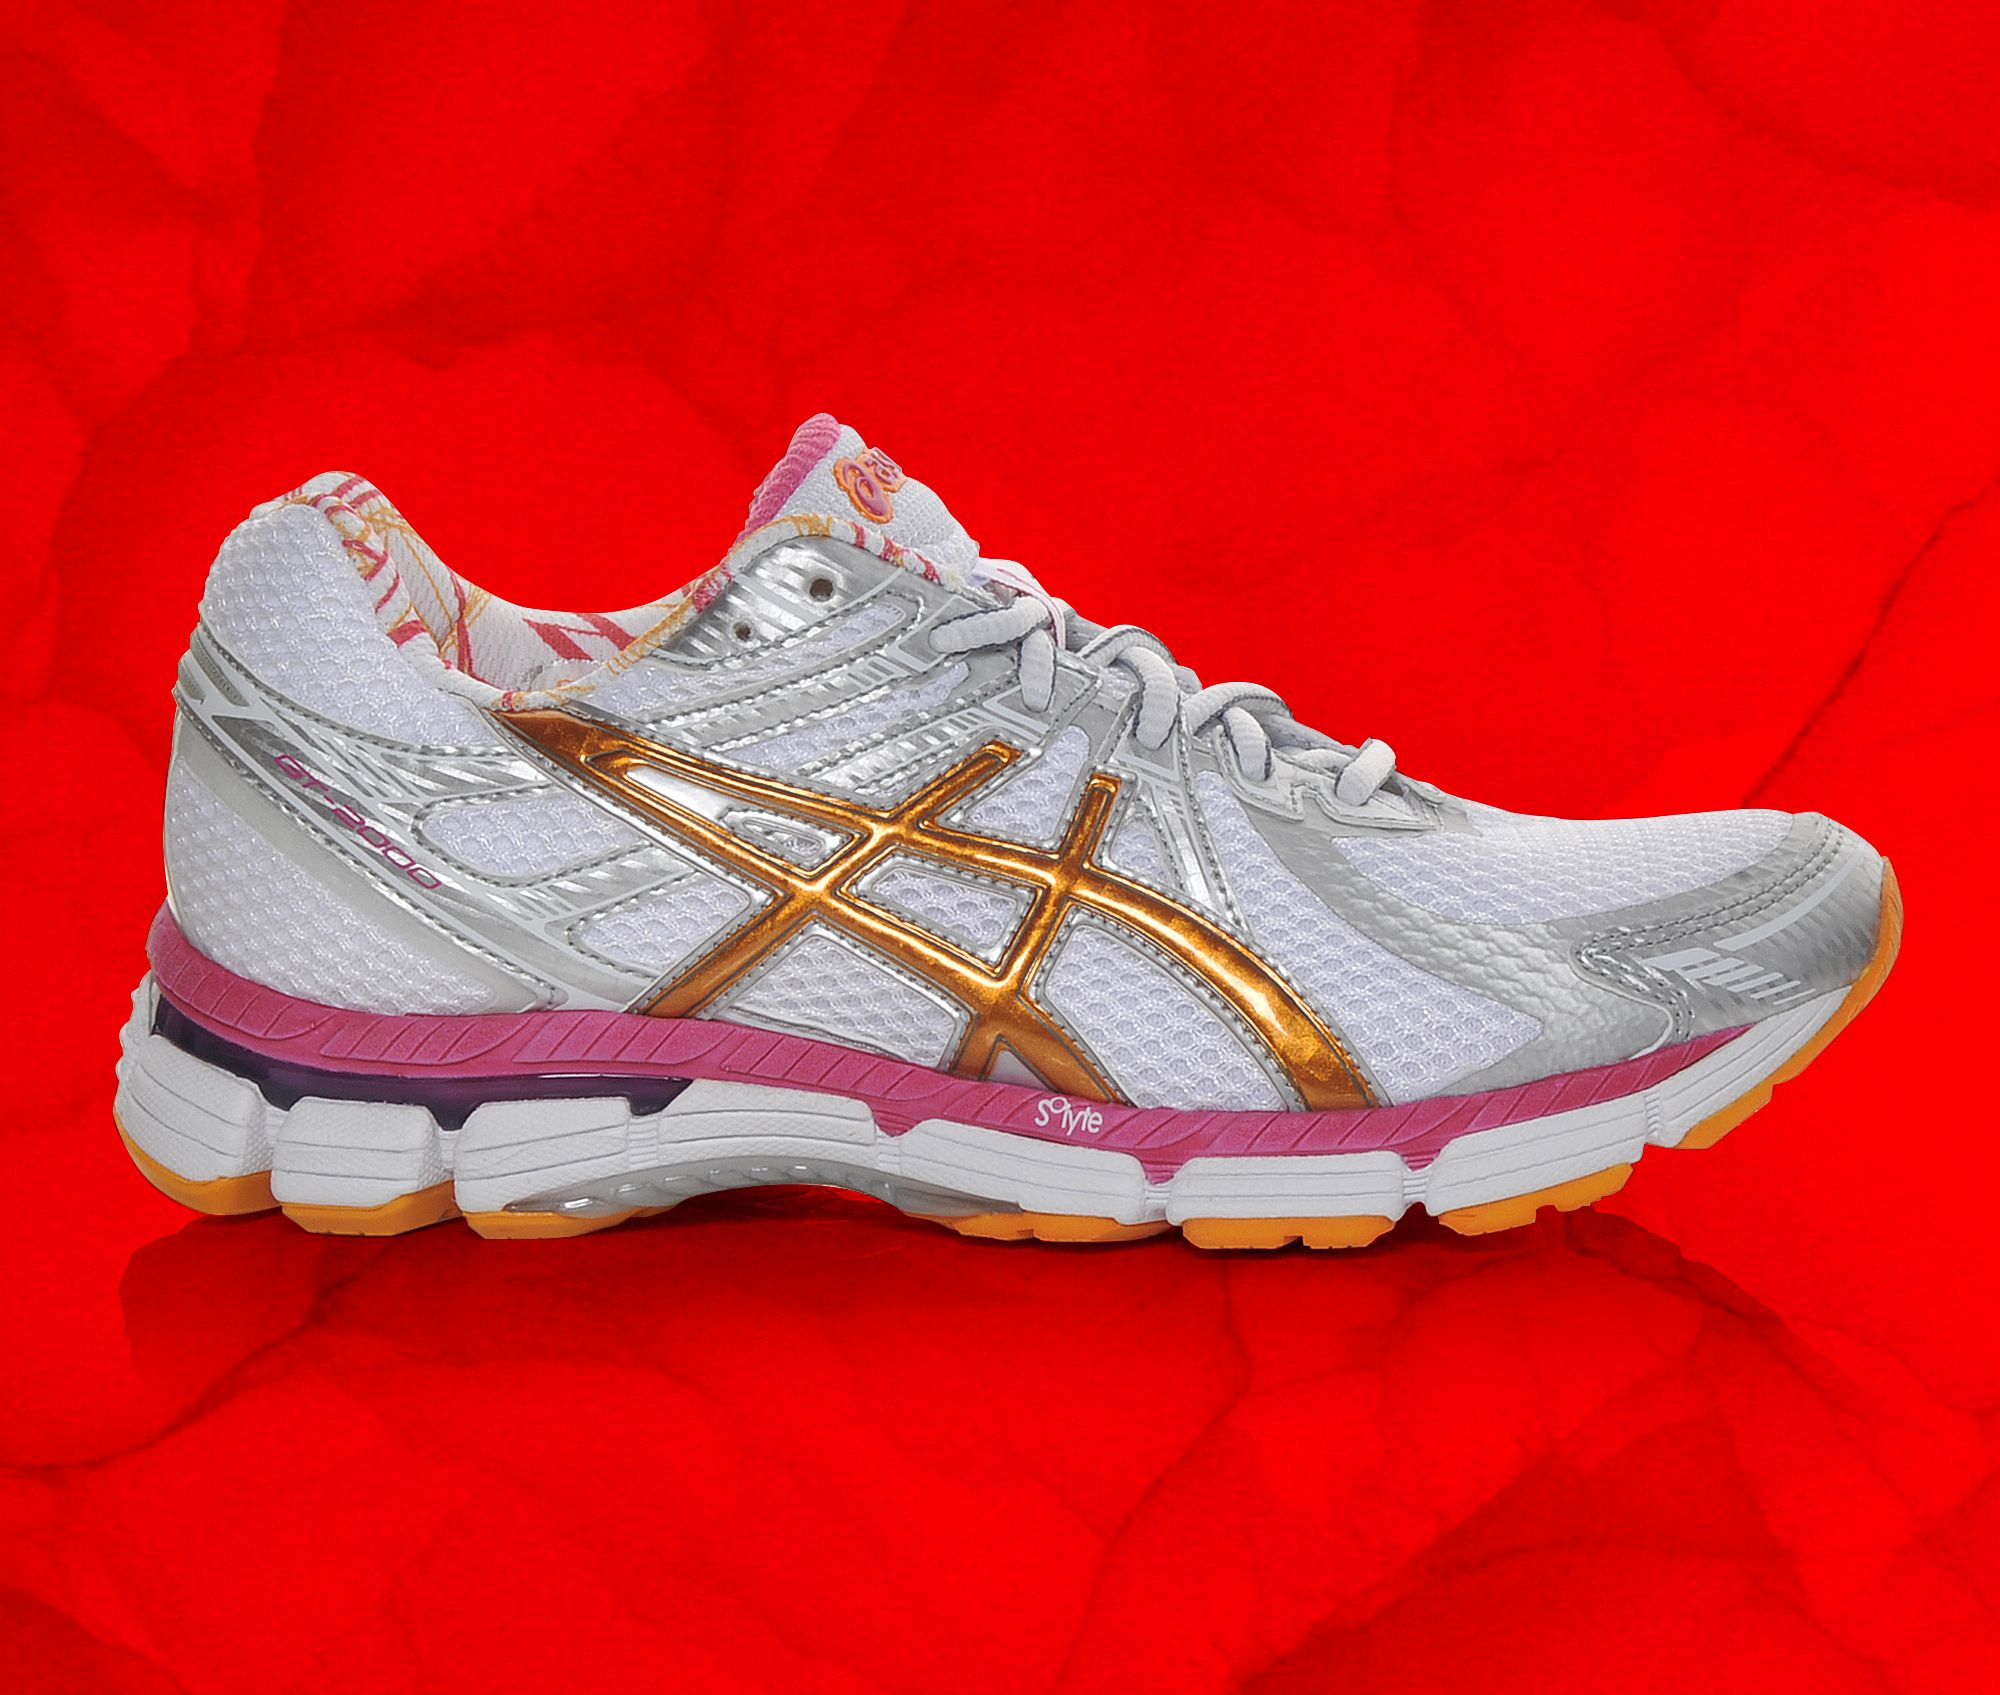 Kick Your Fitness Up A Notch With The Asics GT-2000